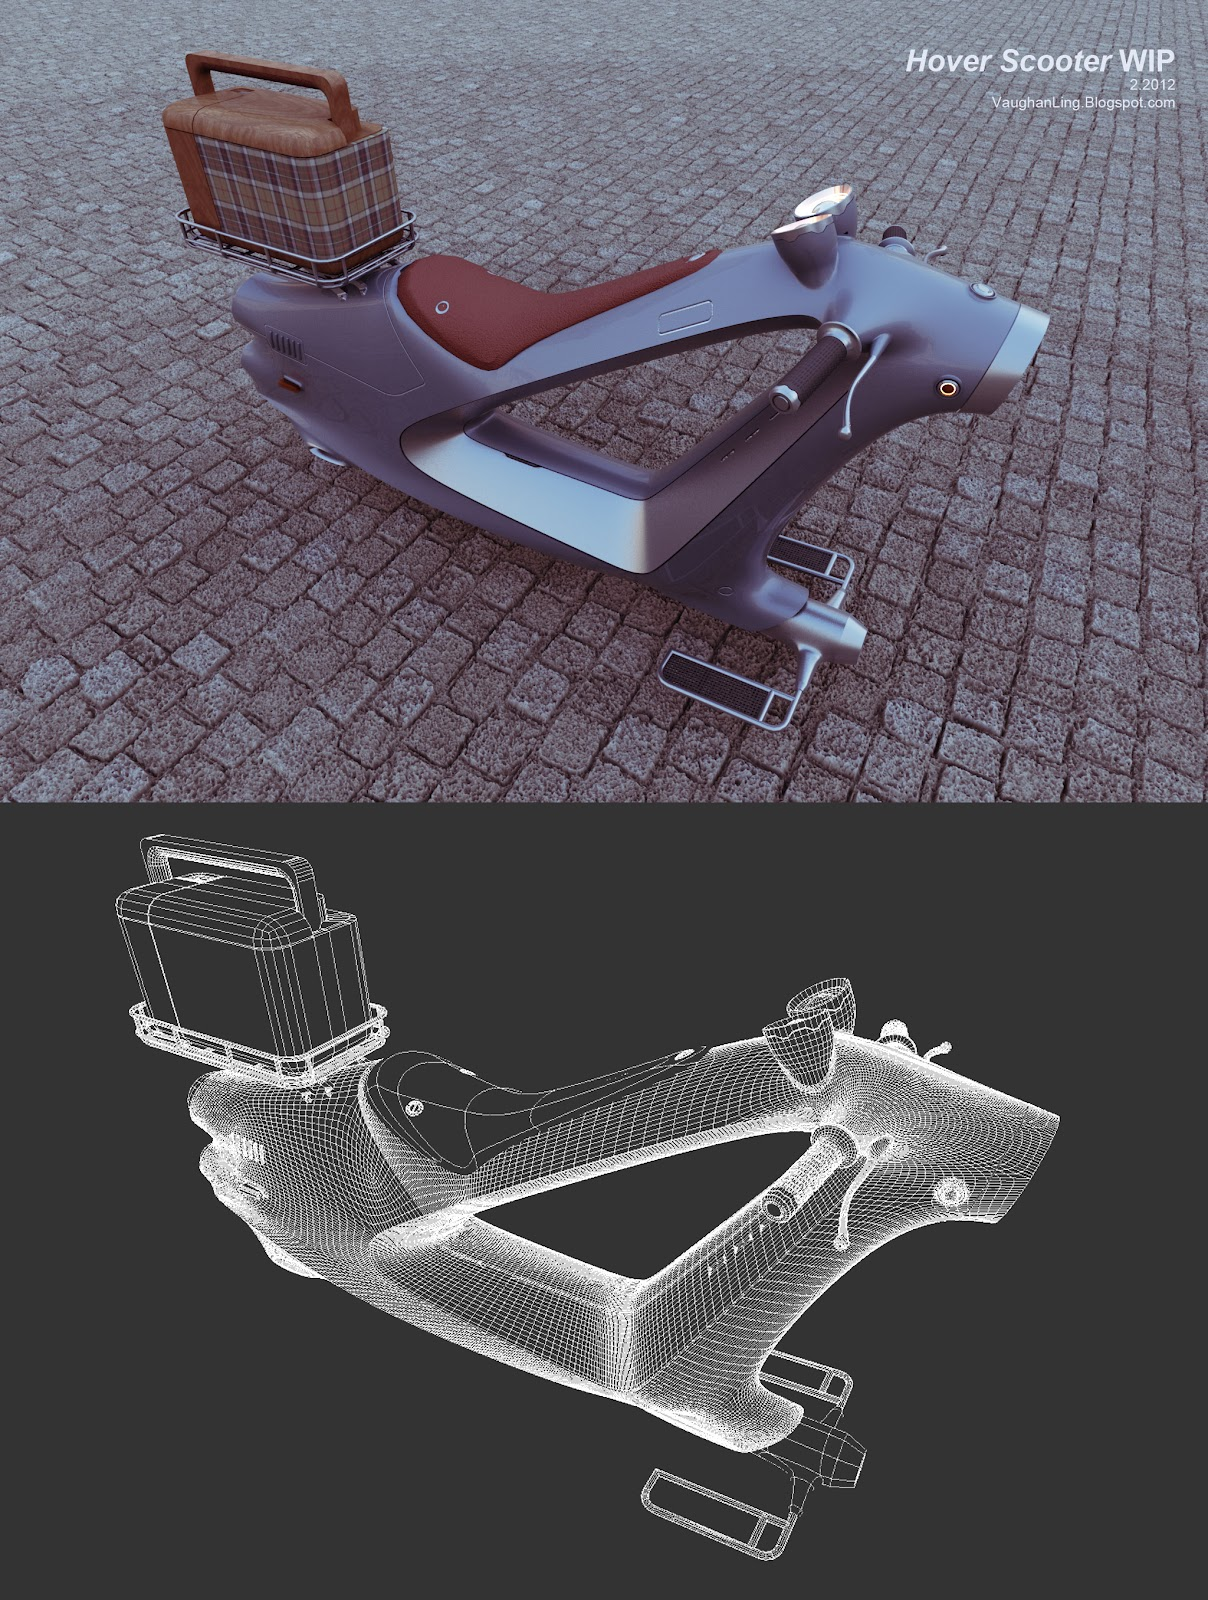 Hover scooter progress